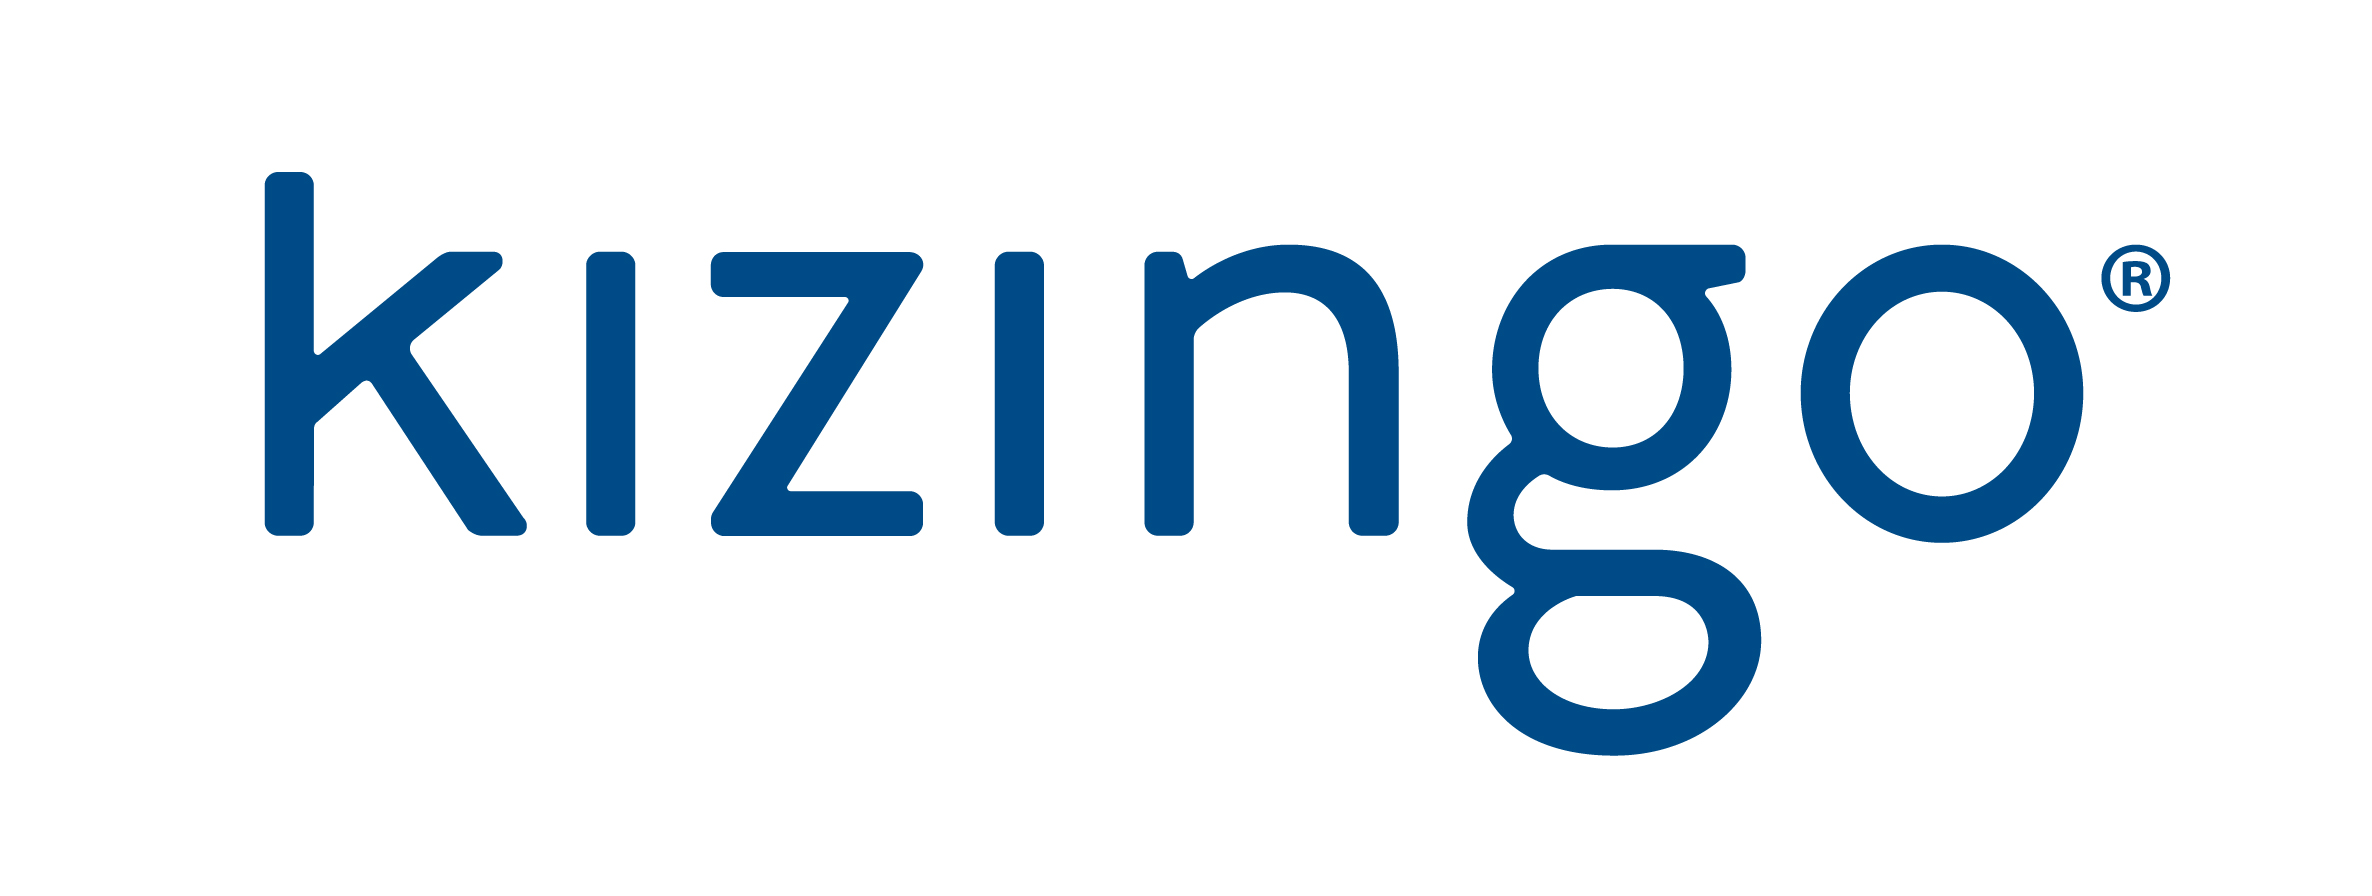 Kizingo.Wordmark.Navy.jpg